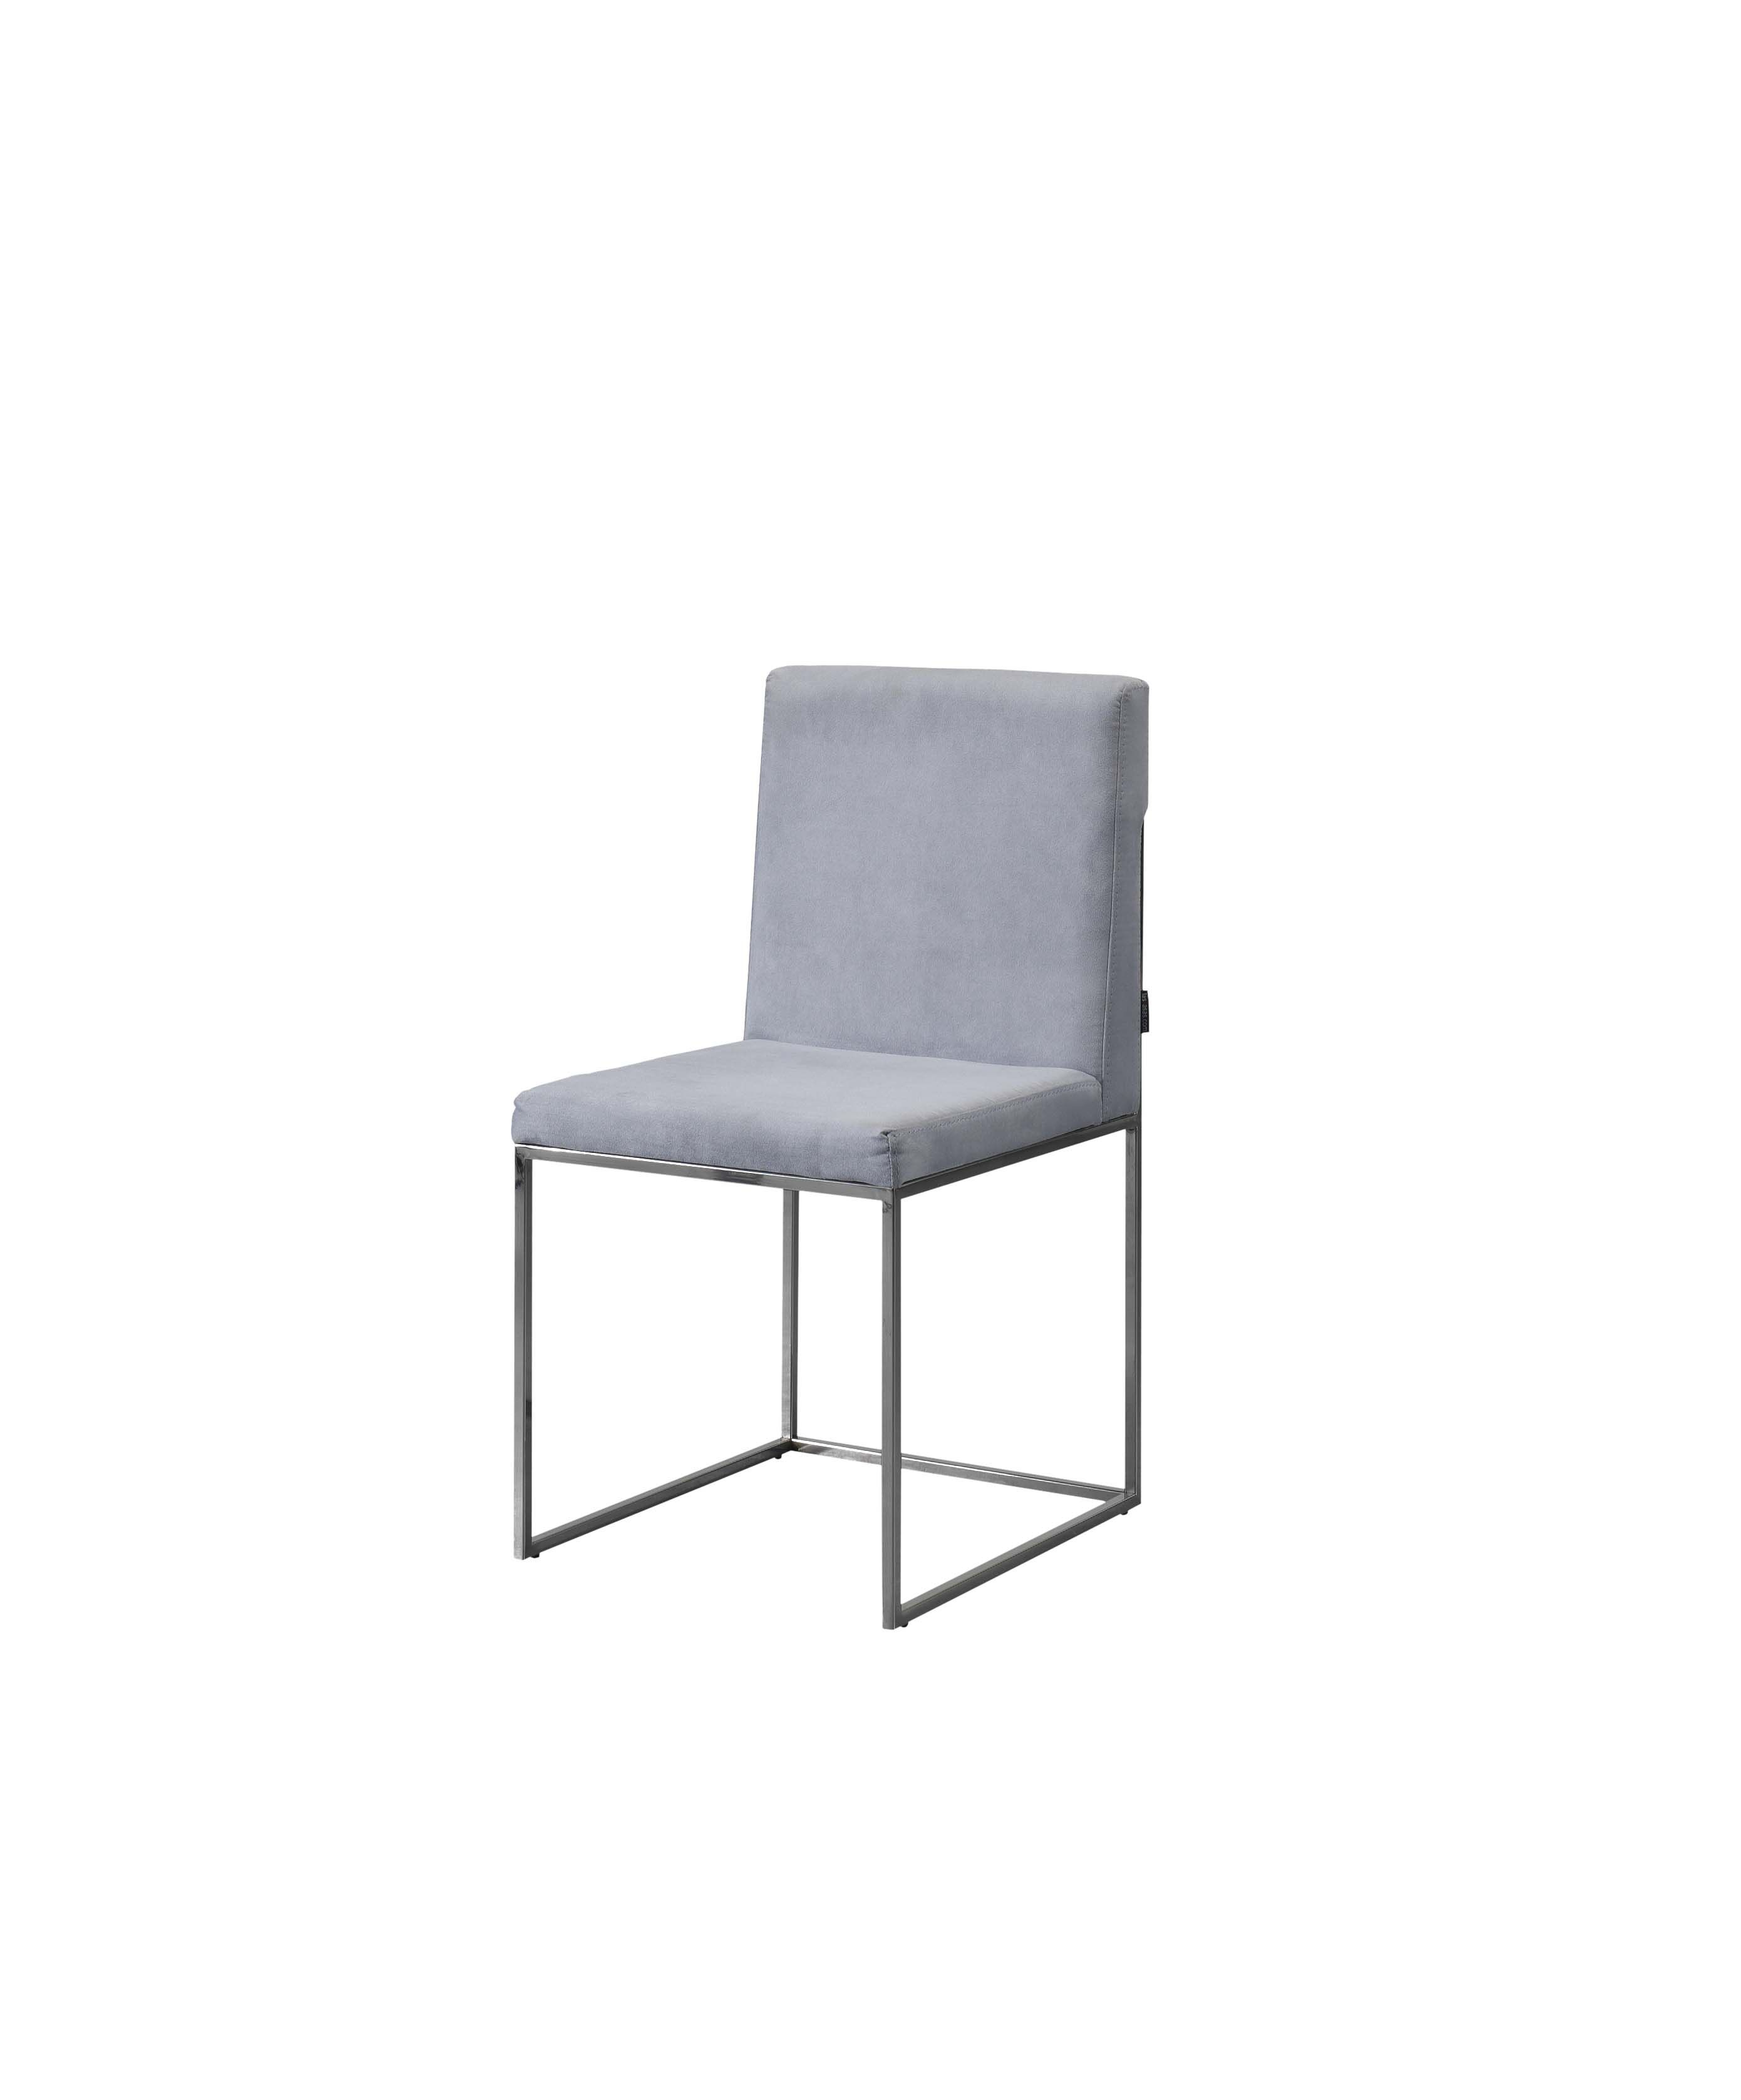 laskasas peter dining chair light blue upholstered chair with